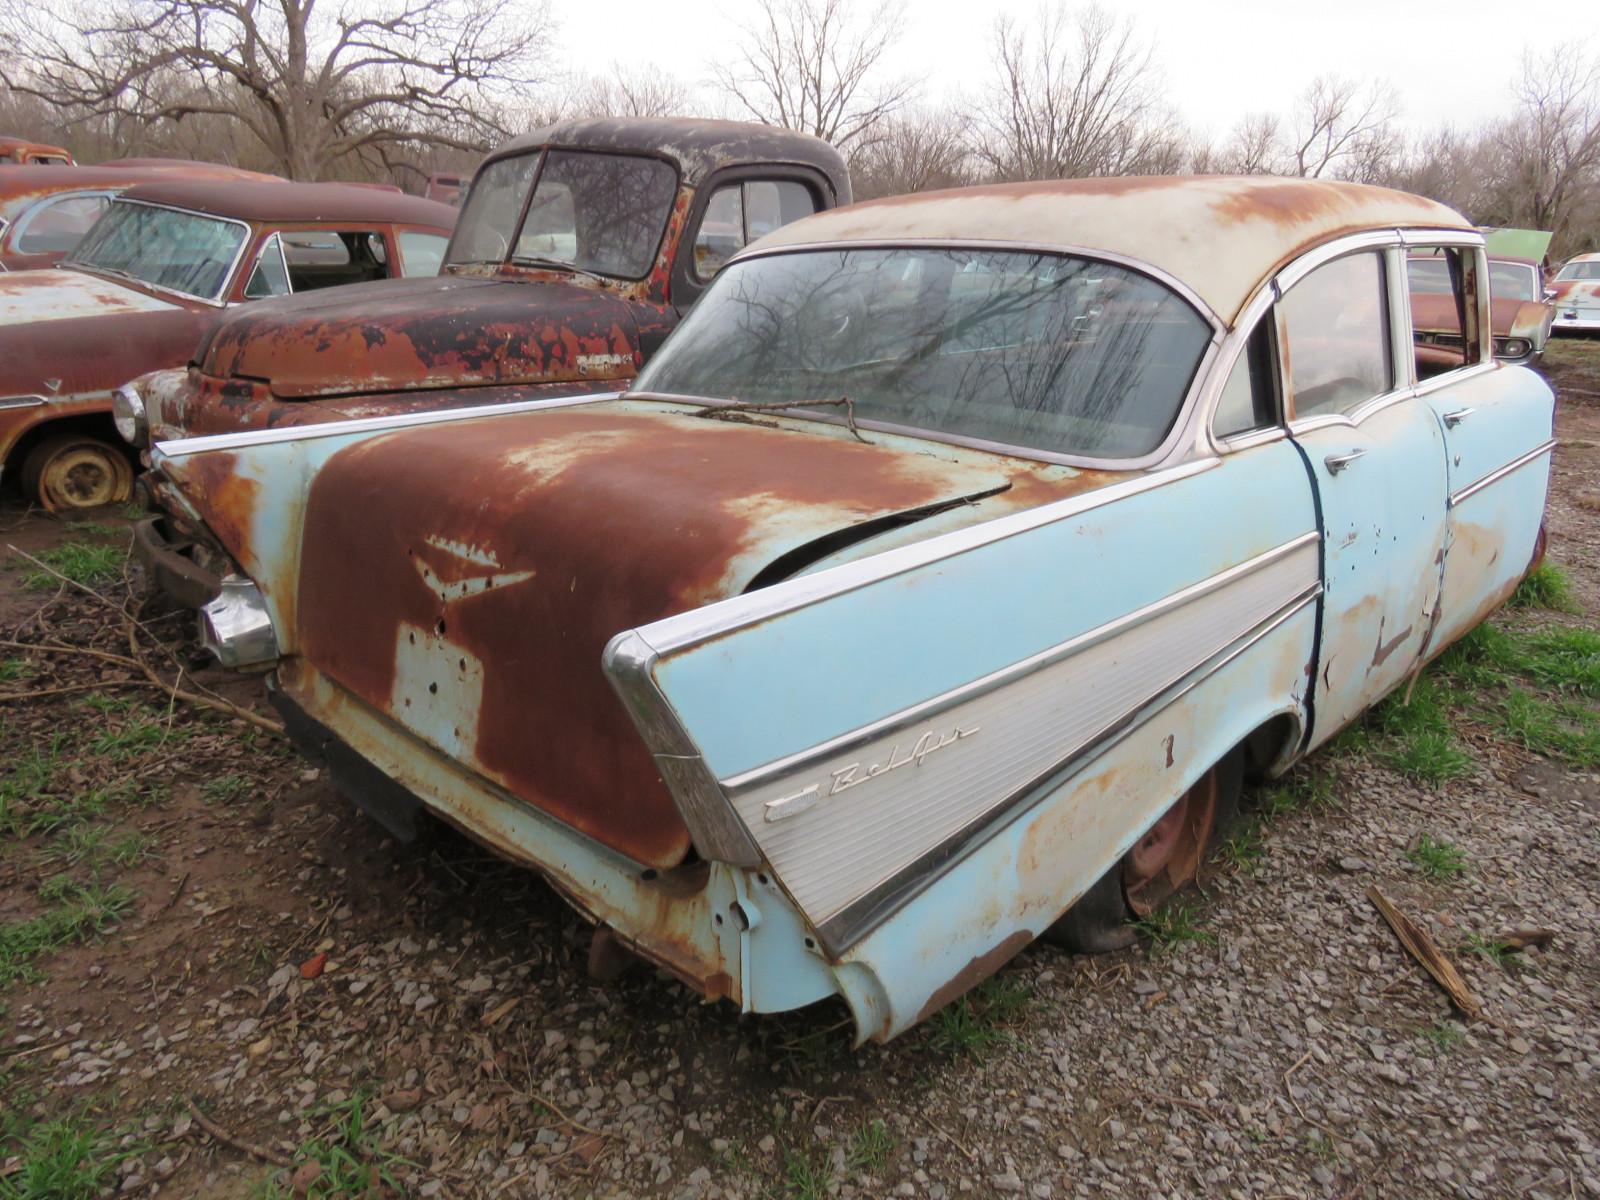 1957 Chevrolet 4dr Sedan for parts VC57K132159 - Image 3